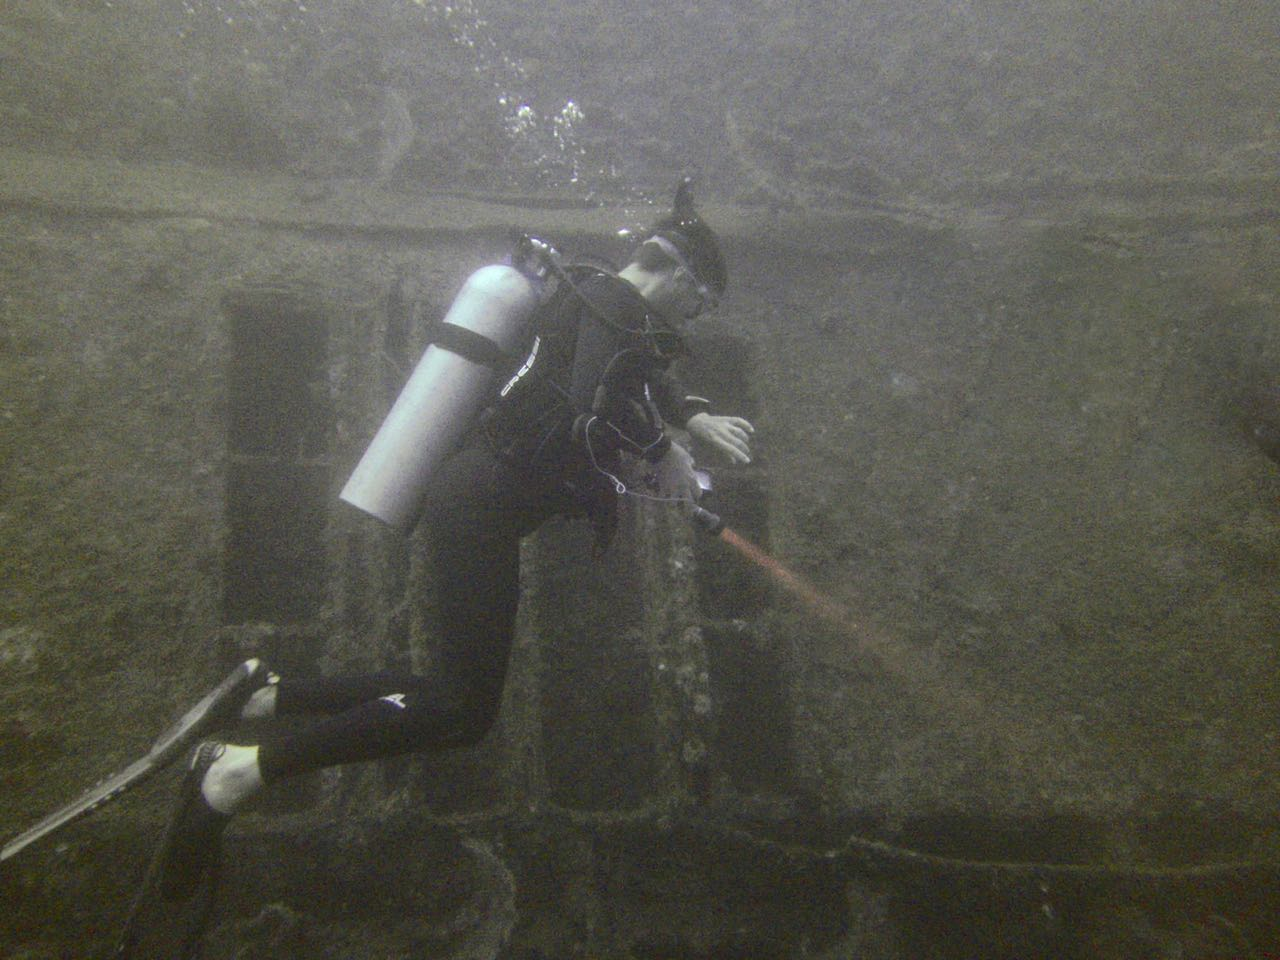 Andrew checks his watch to keep track of our dive time and nitrogen absorption.